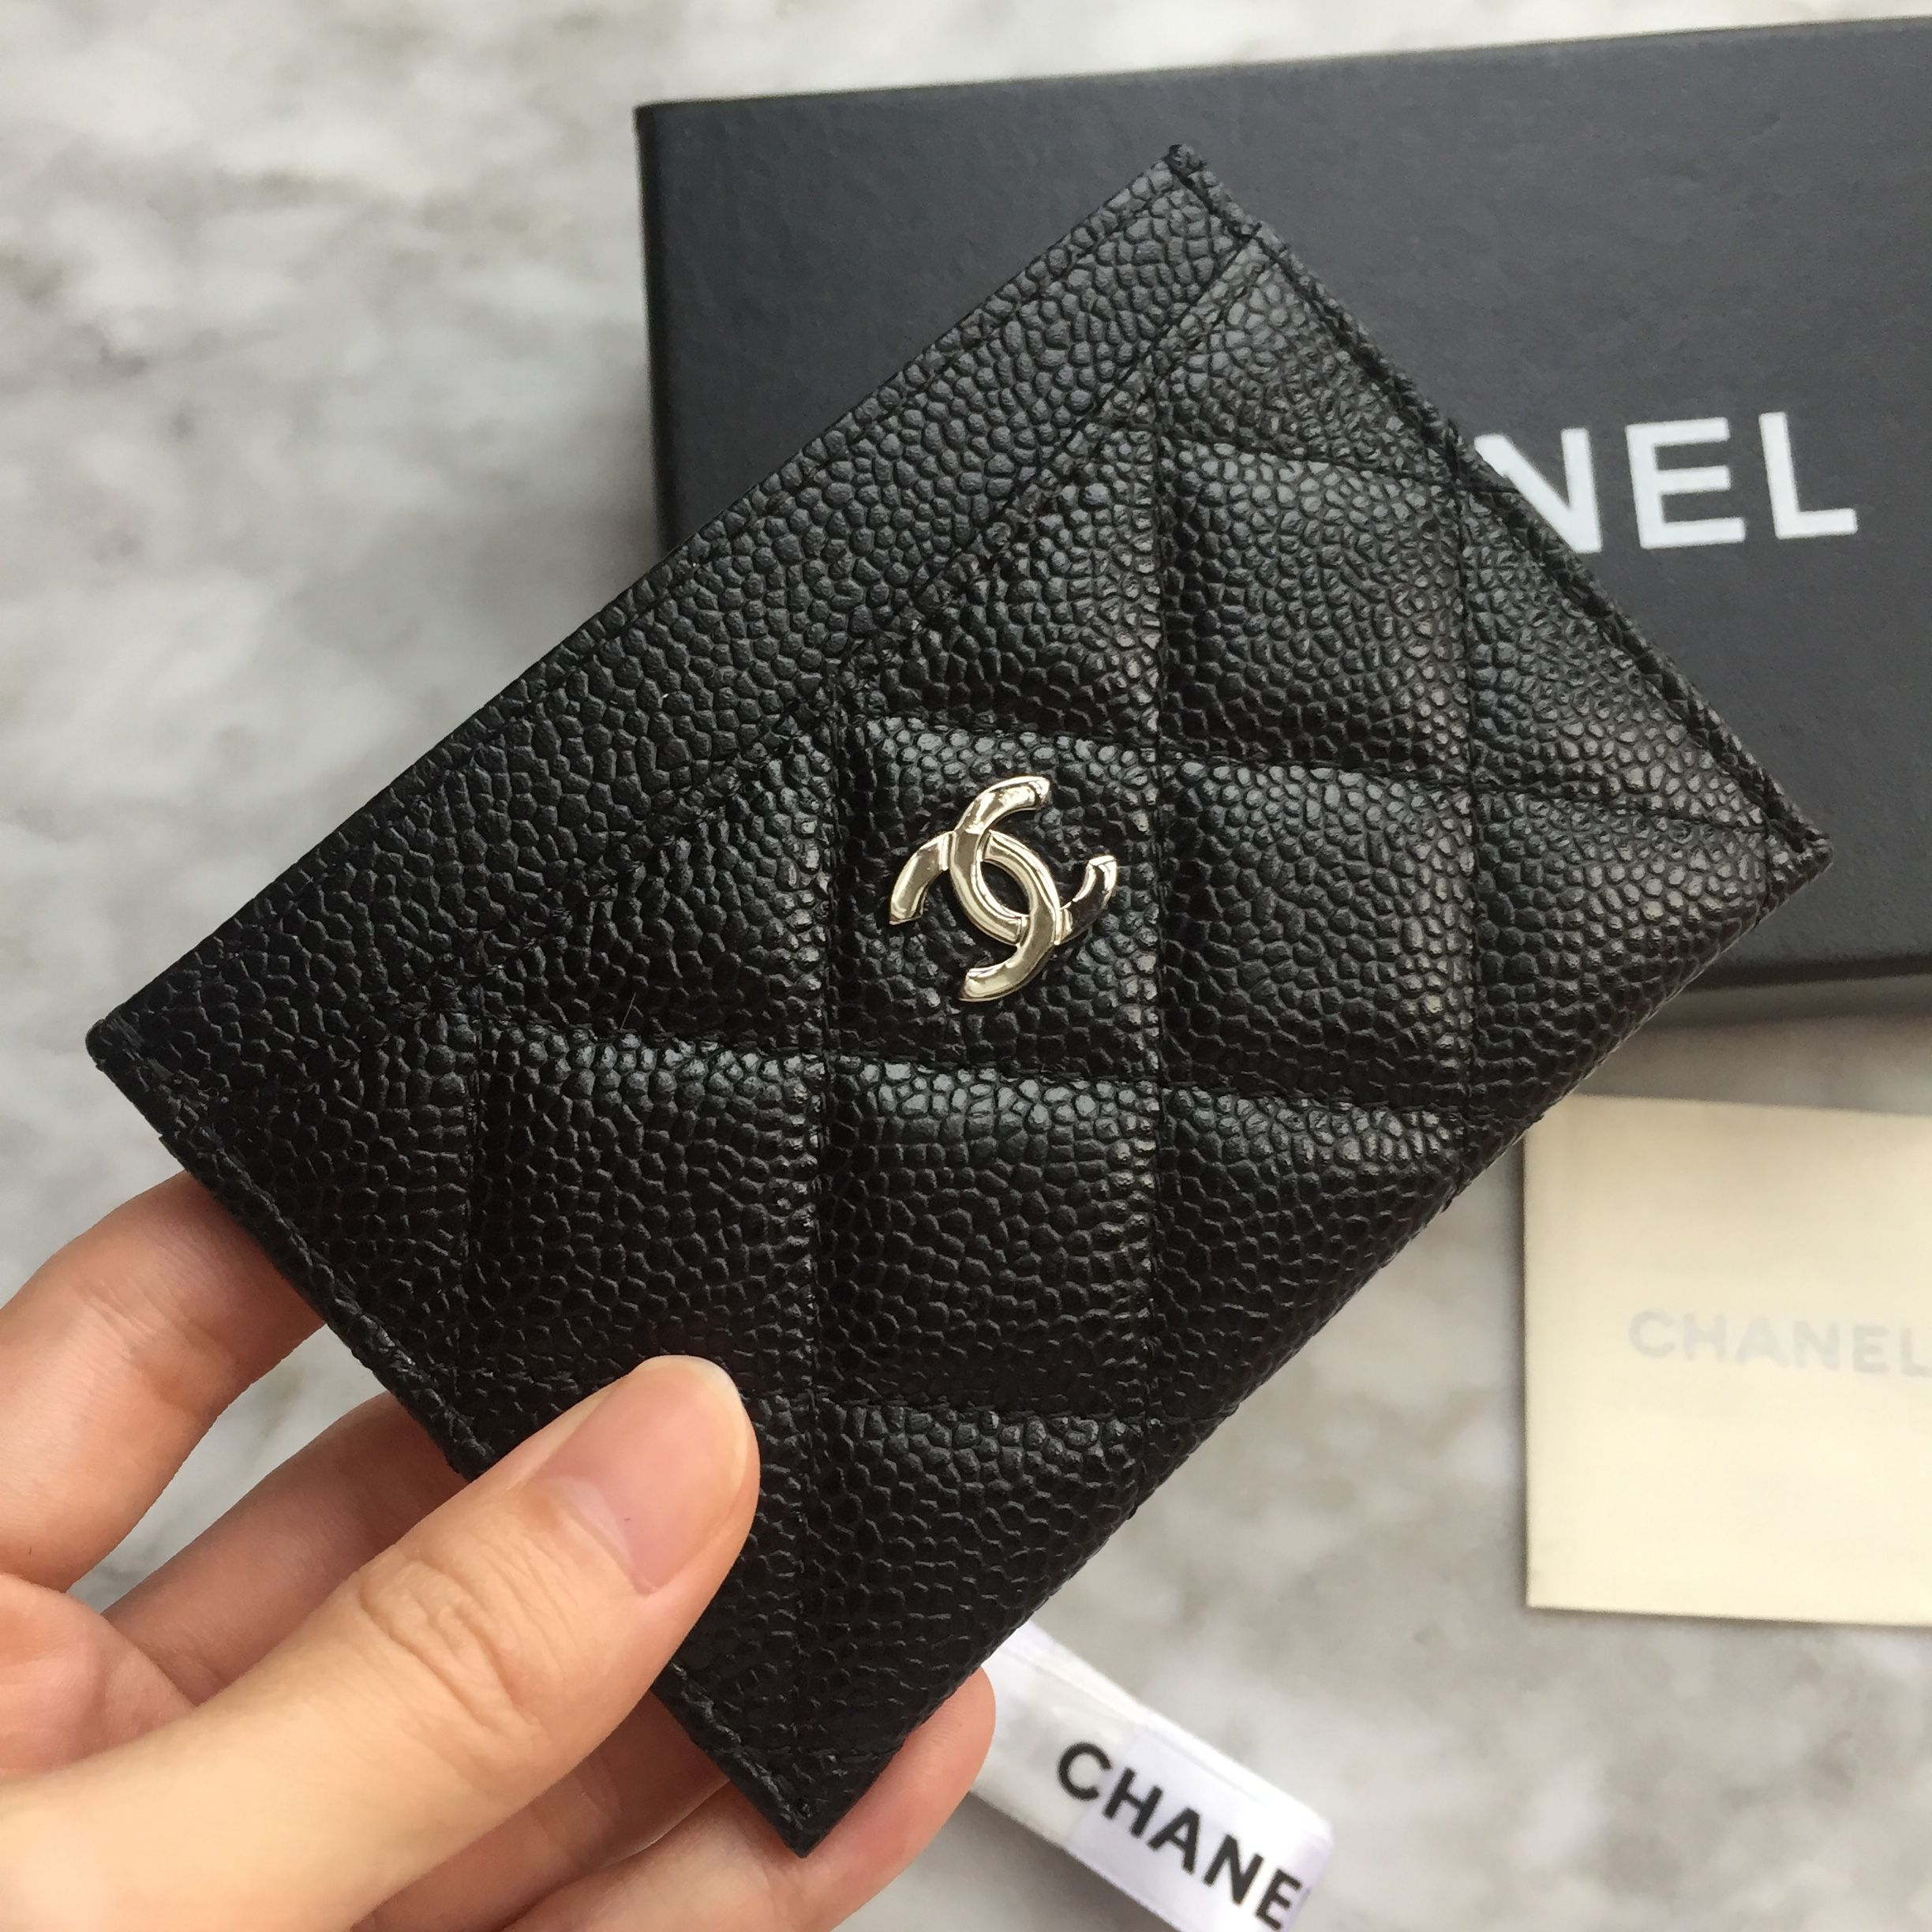 409ee974a9cadb Chanel card holder black caviar leather | bags | Визитница, Сумки и  Аксессуары